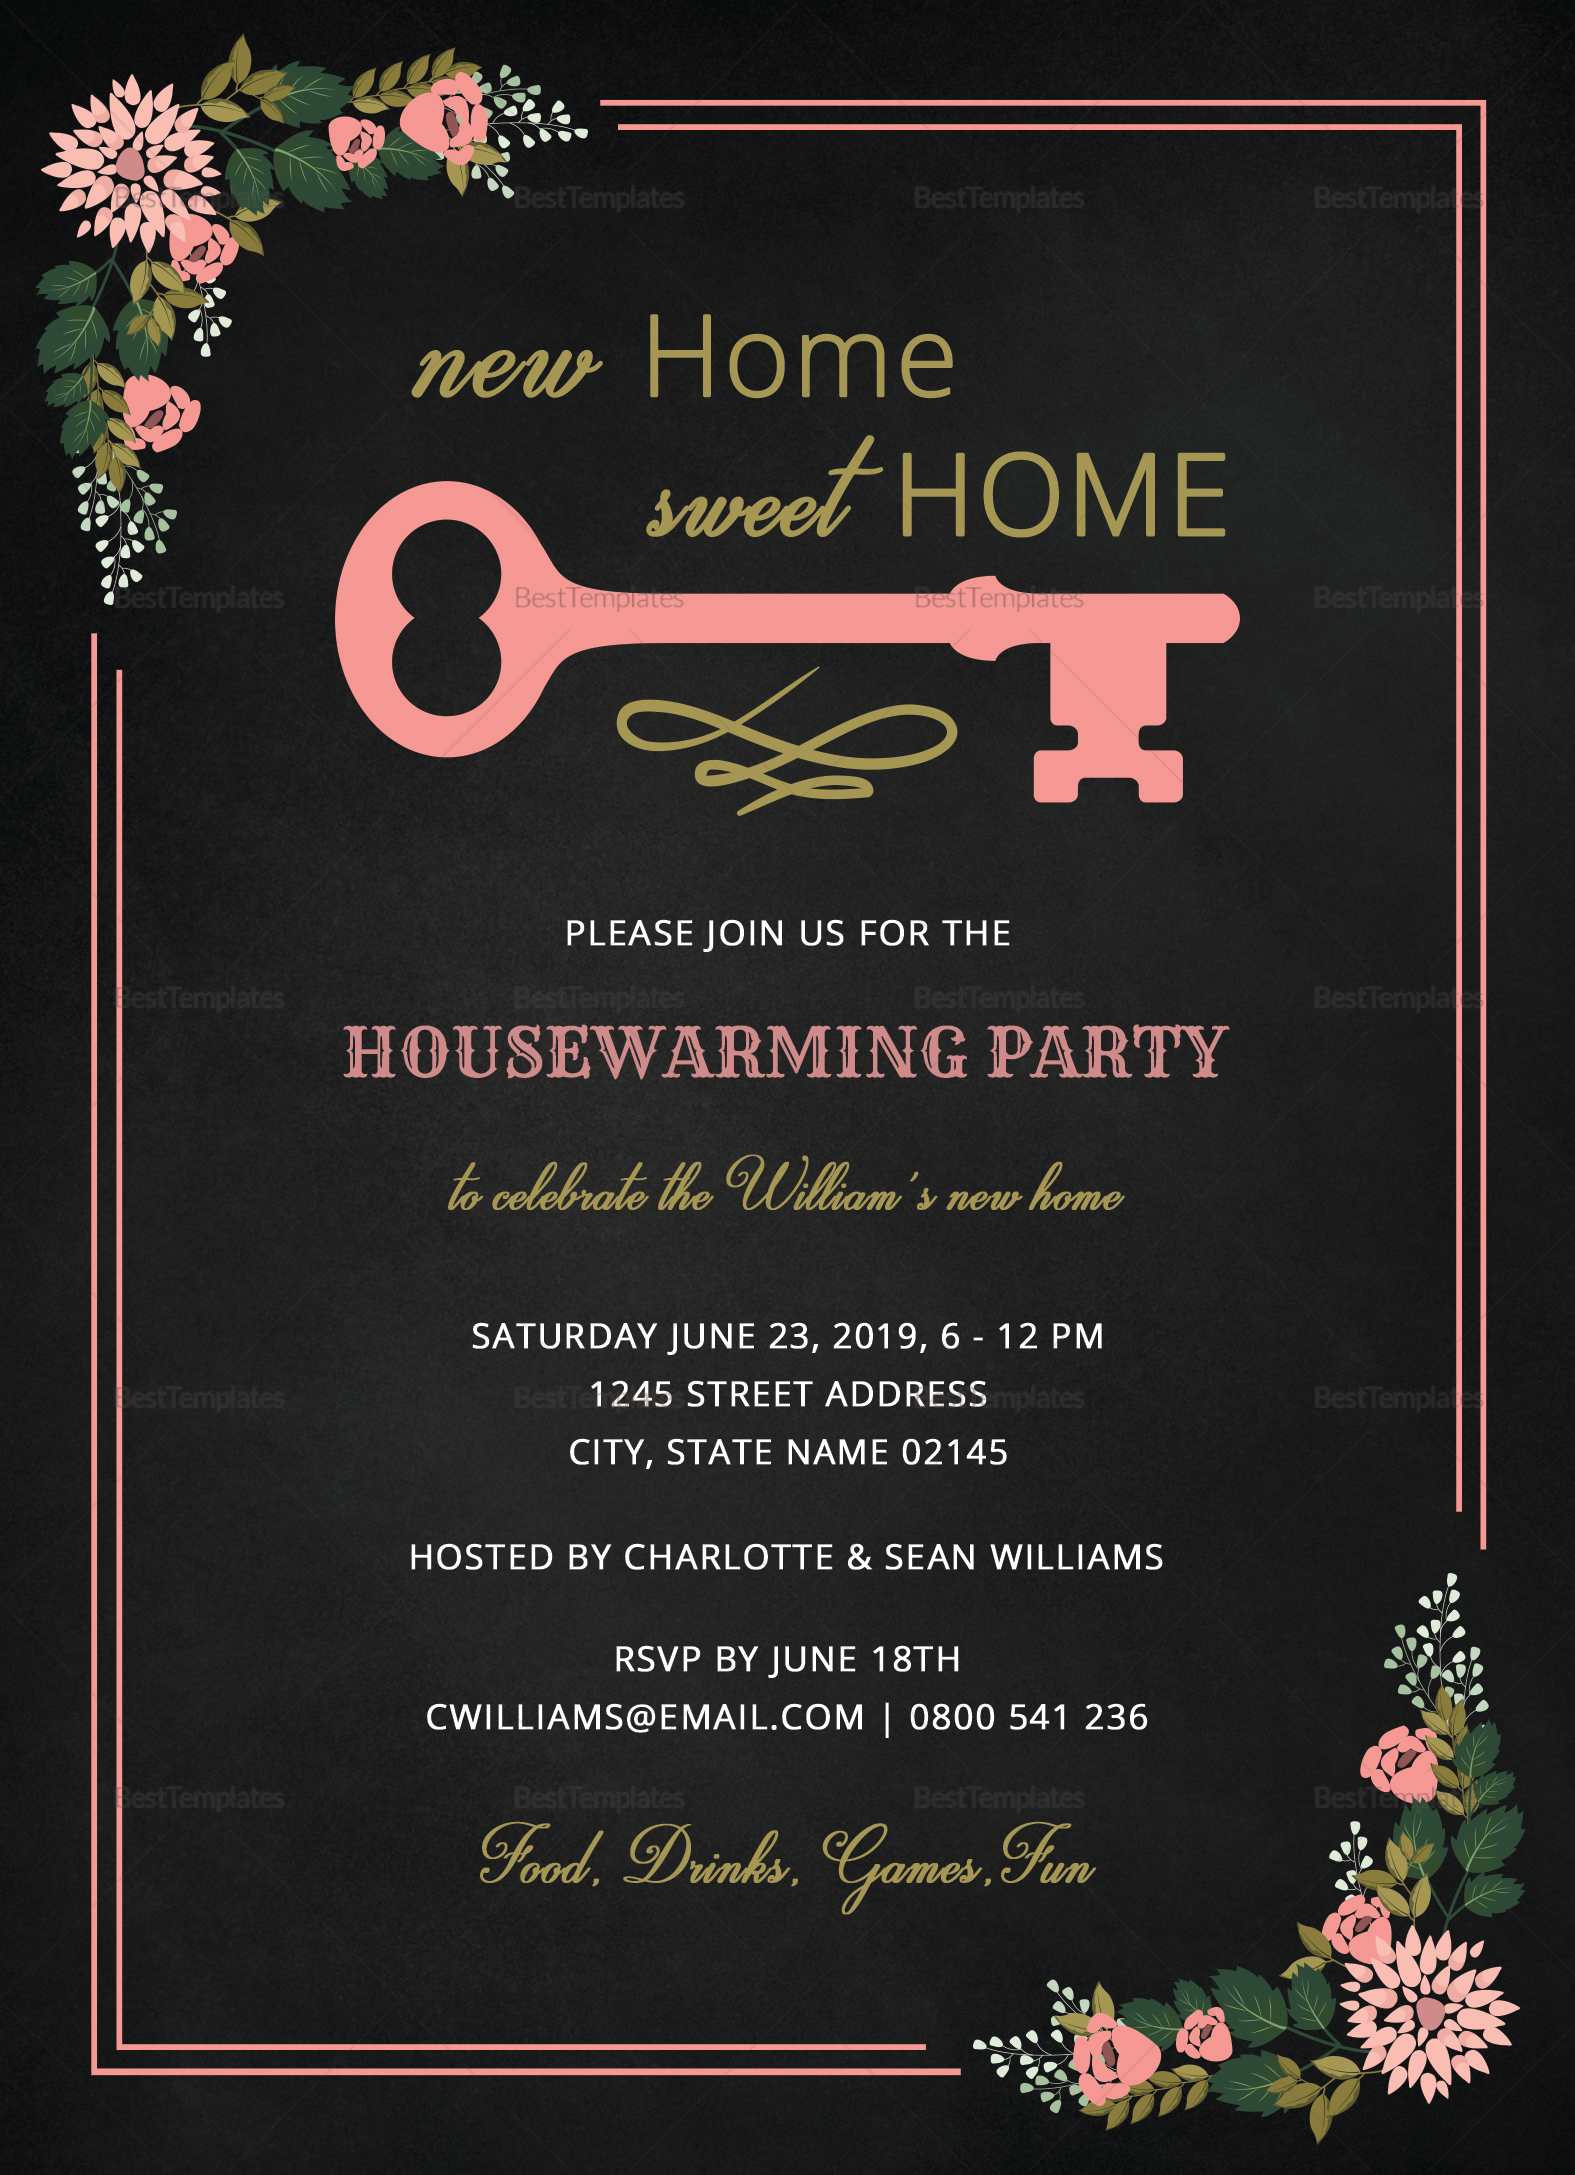 chalkboard housewarming invitation design template in word psd publisher. Black Bedroom Furniture Sets. Home Design Ideas